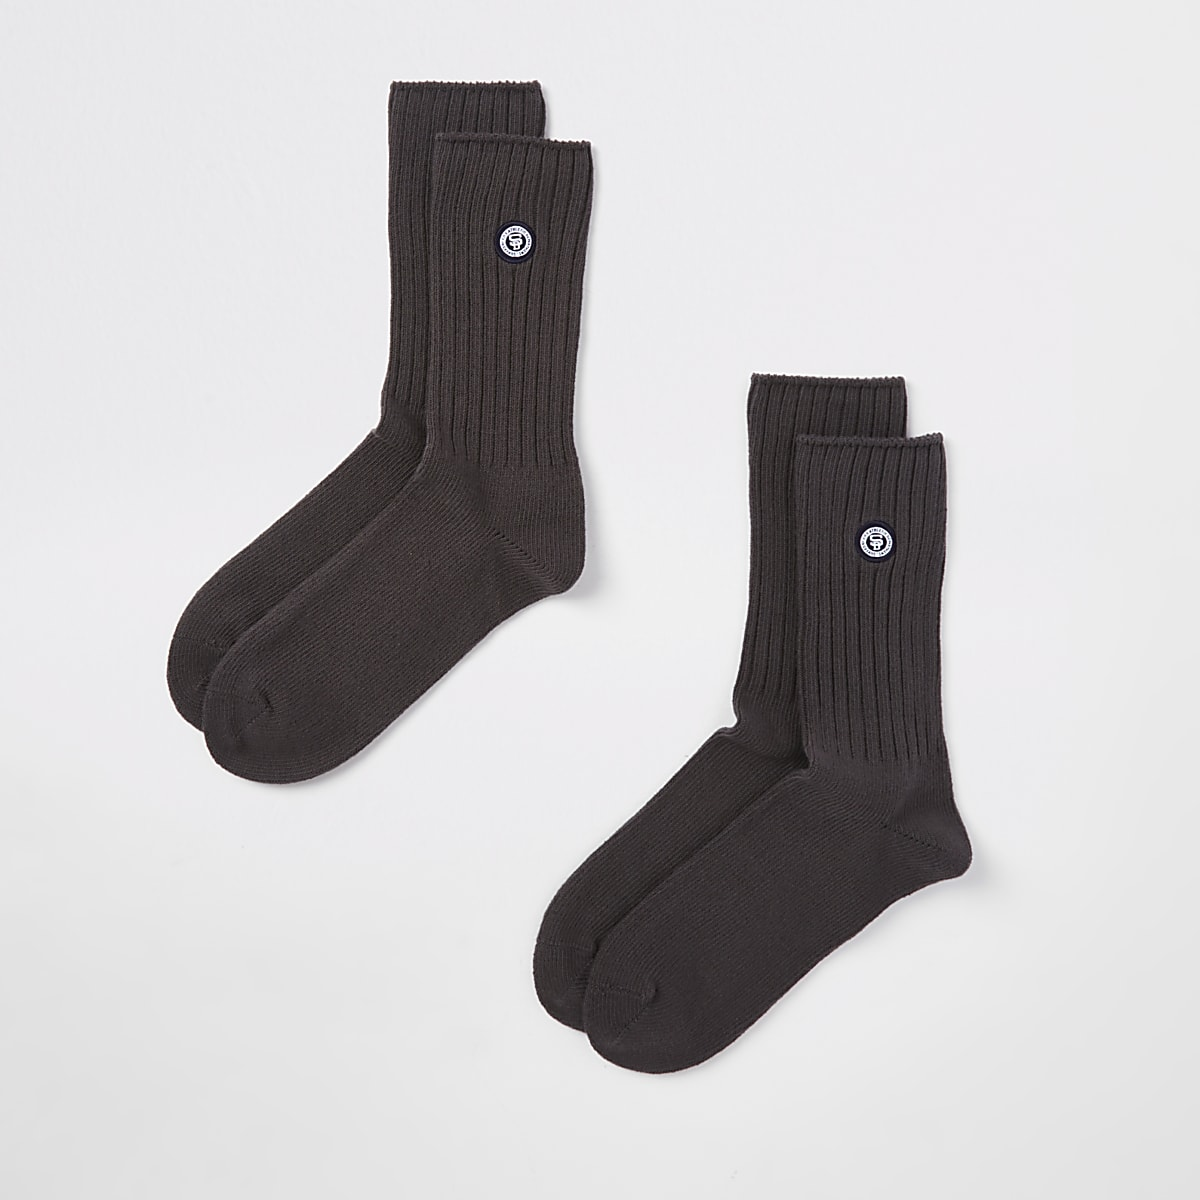 Superdry University grey socks 2 pack